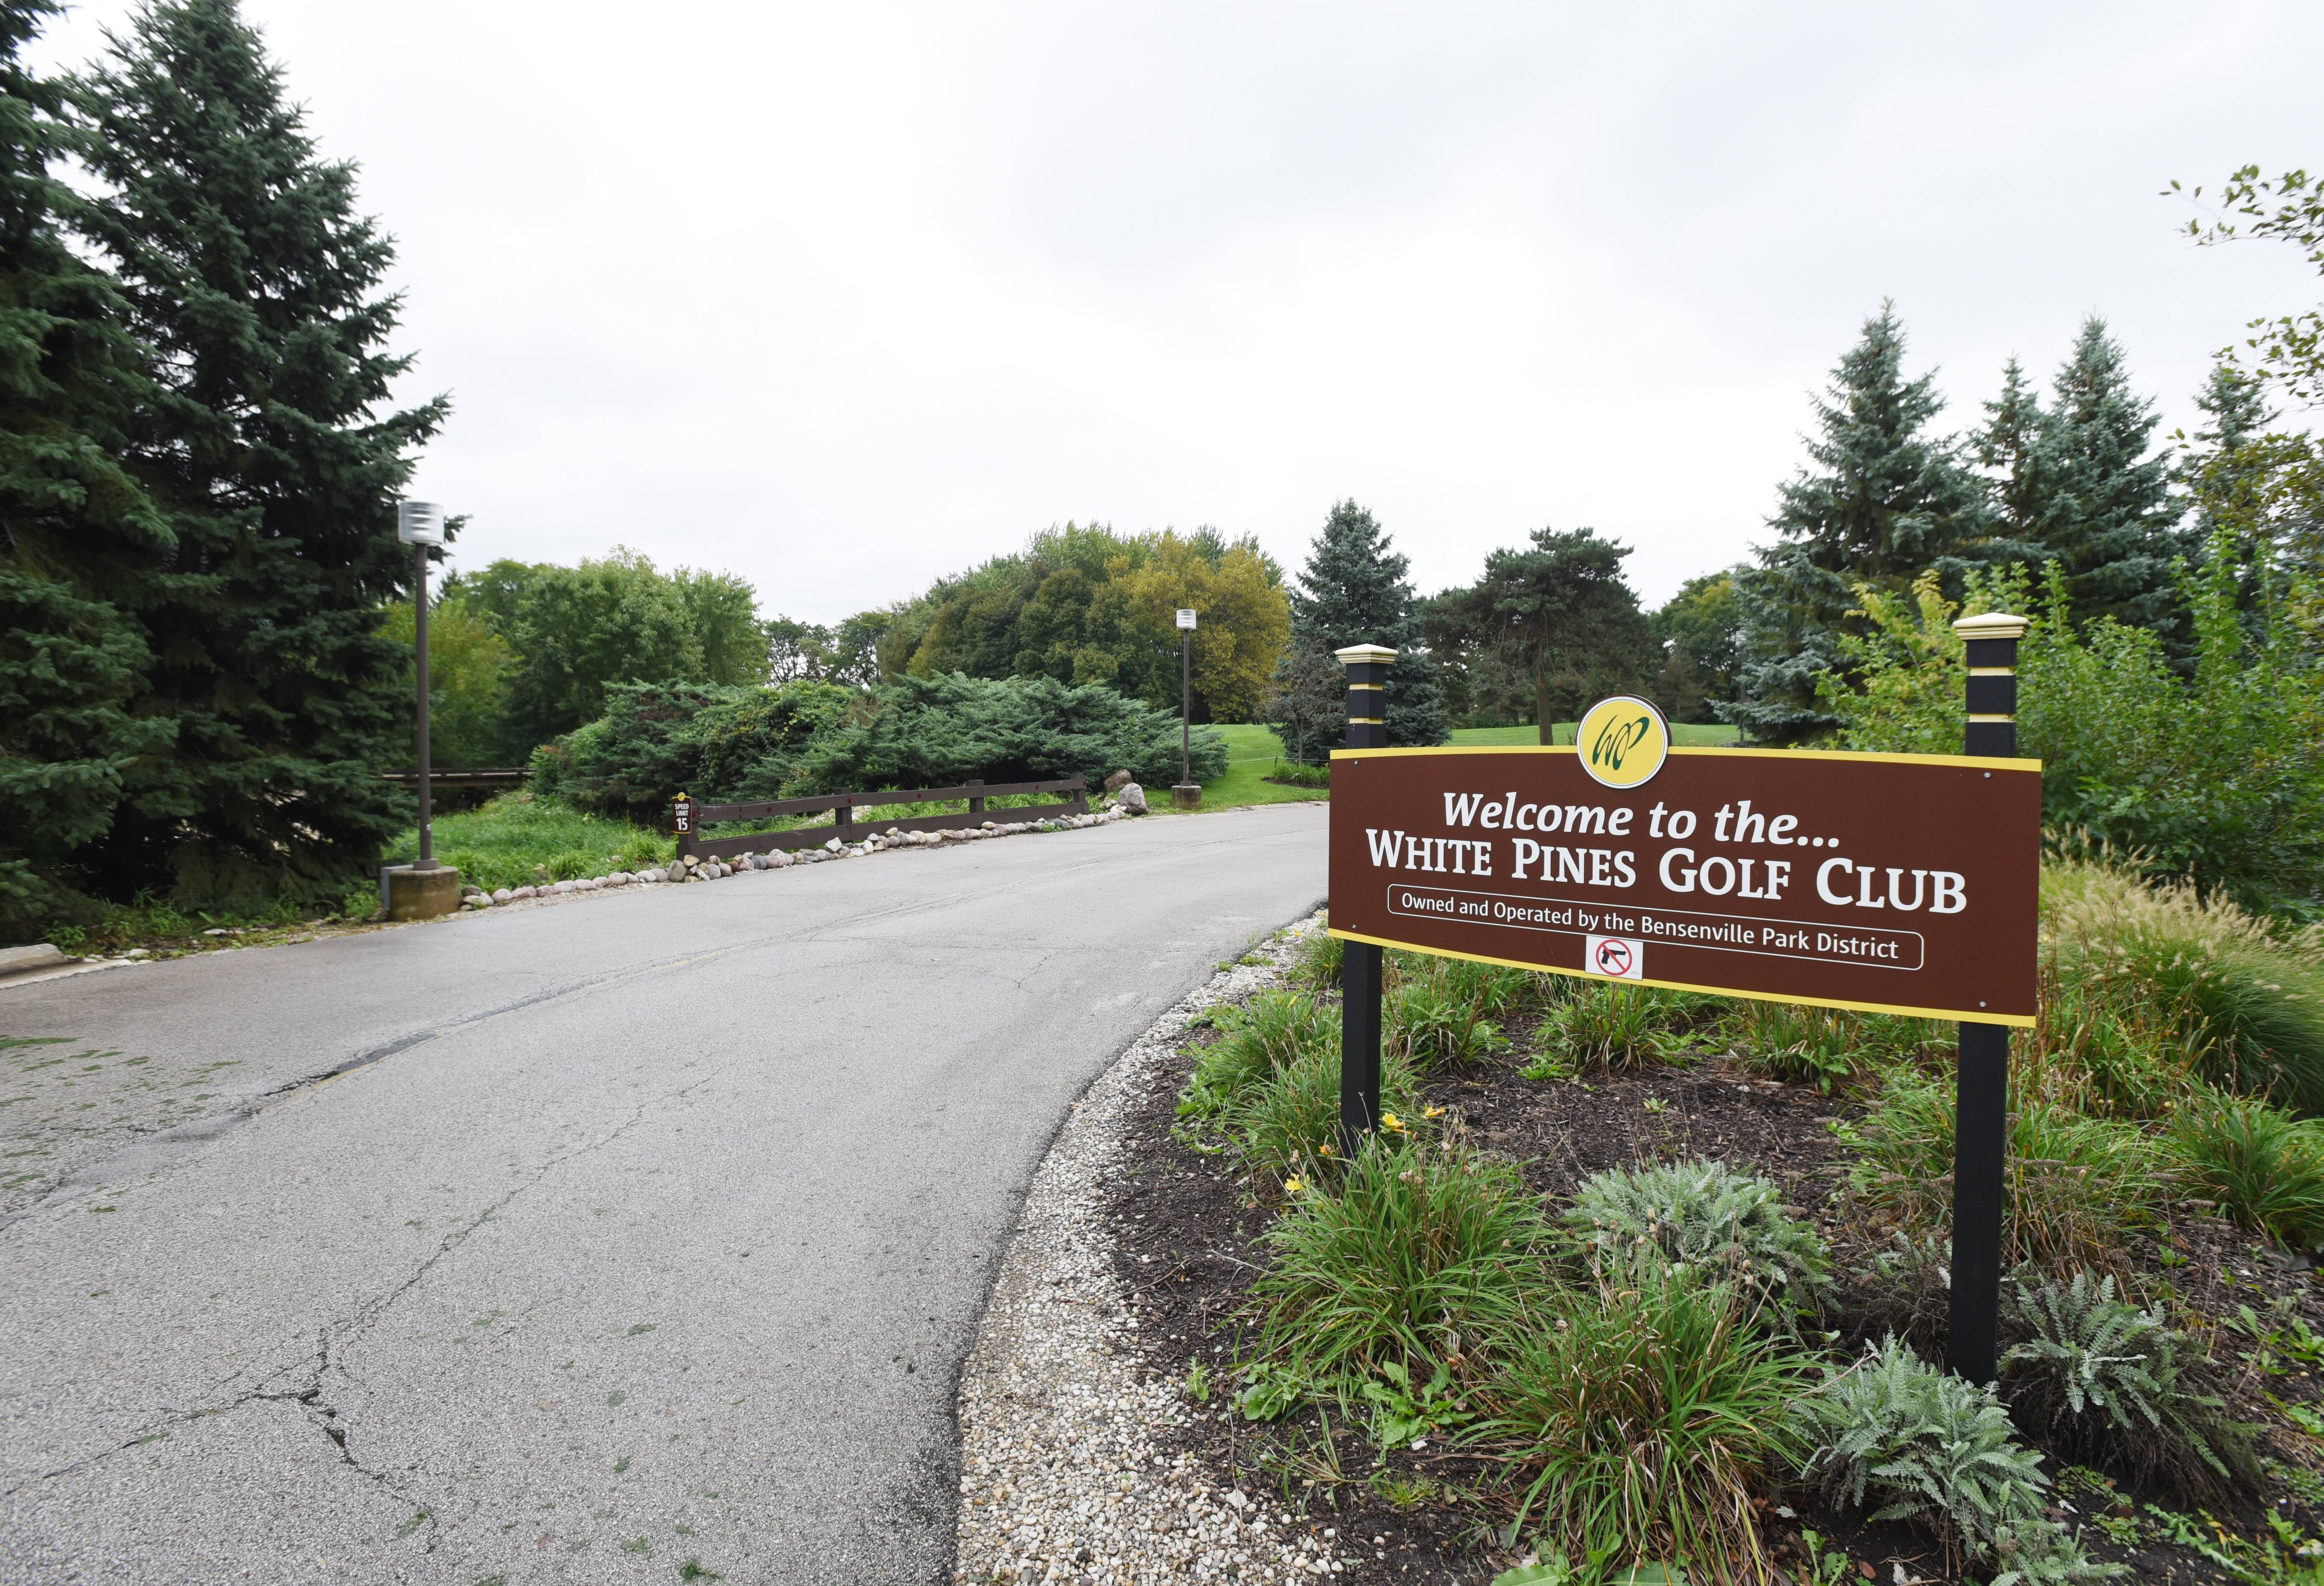 White Pines Golf Club in Bensenville reopened for business Friday, one day after a woman's body was discovered on the property.